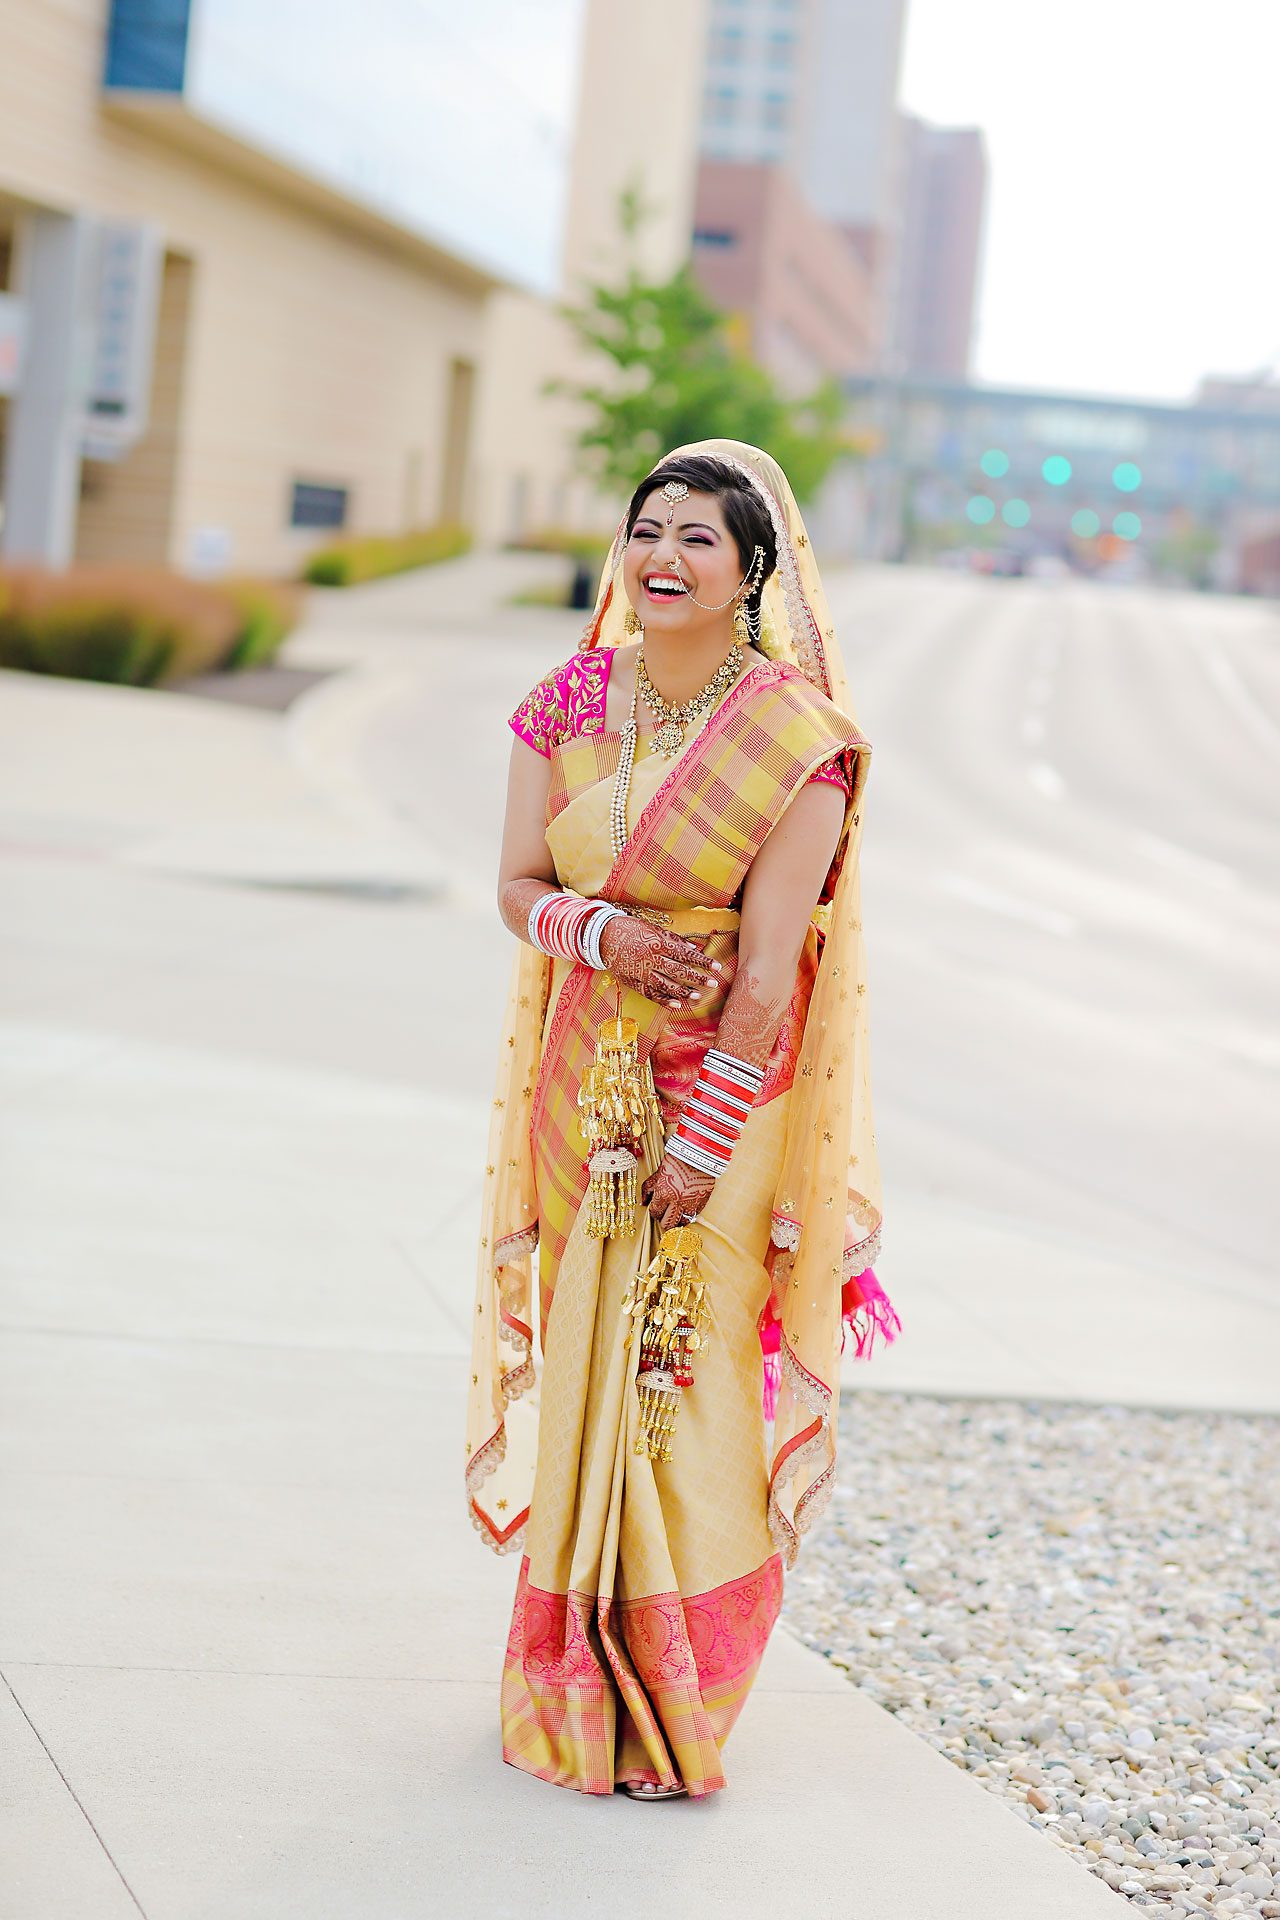 078 Vandana Anurag Indianapolis Indian Wedding